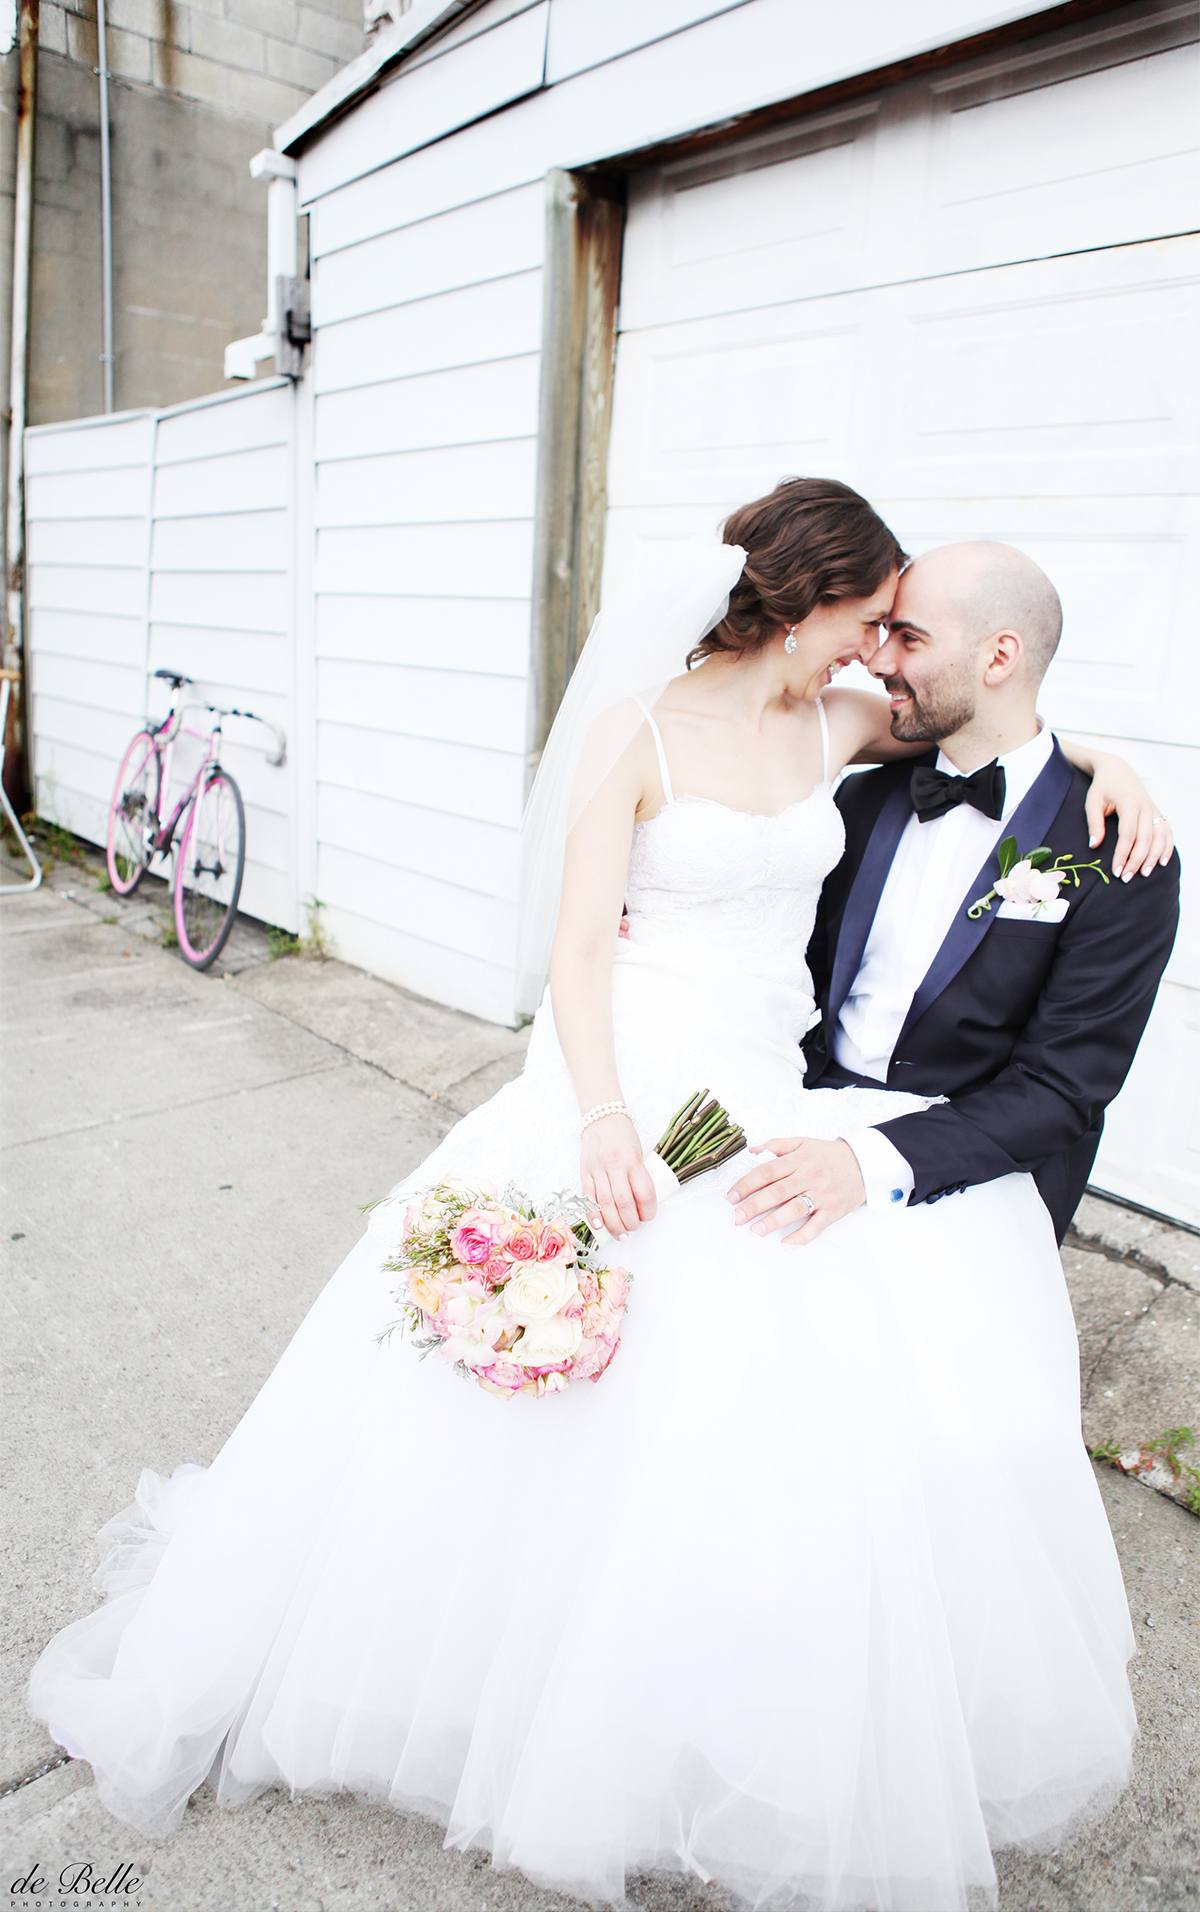 Montreal-Wedding-Photographer-Debelle-SD6